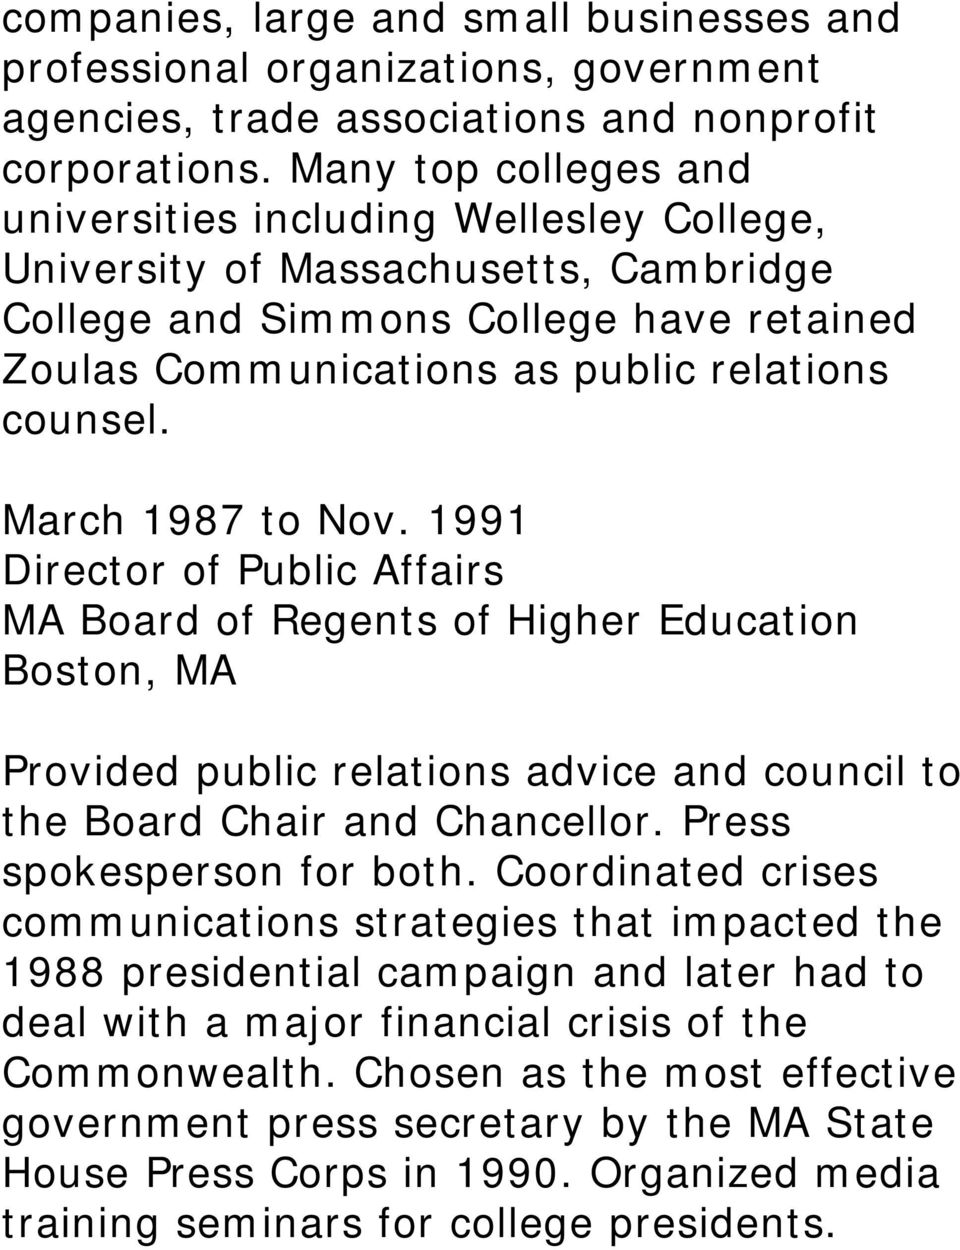 March 1987 to Nov. 1991 Director of Public Affairs MA Board of Regents of Higher Education Boston, MA Provided public relations advice and council to the Board Chair and Chancellor.